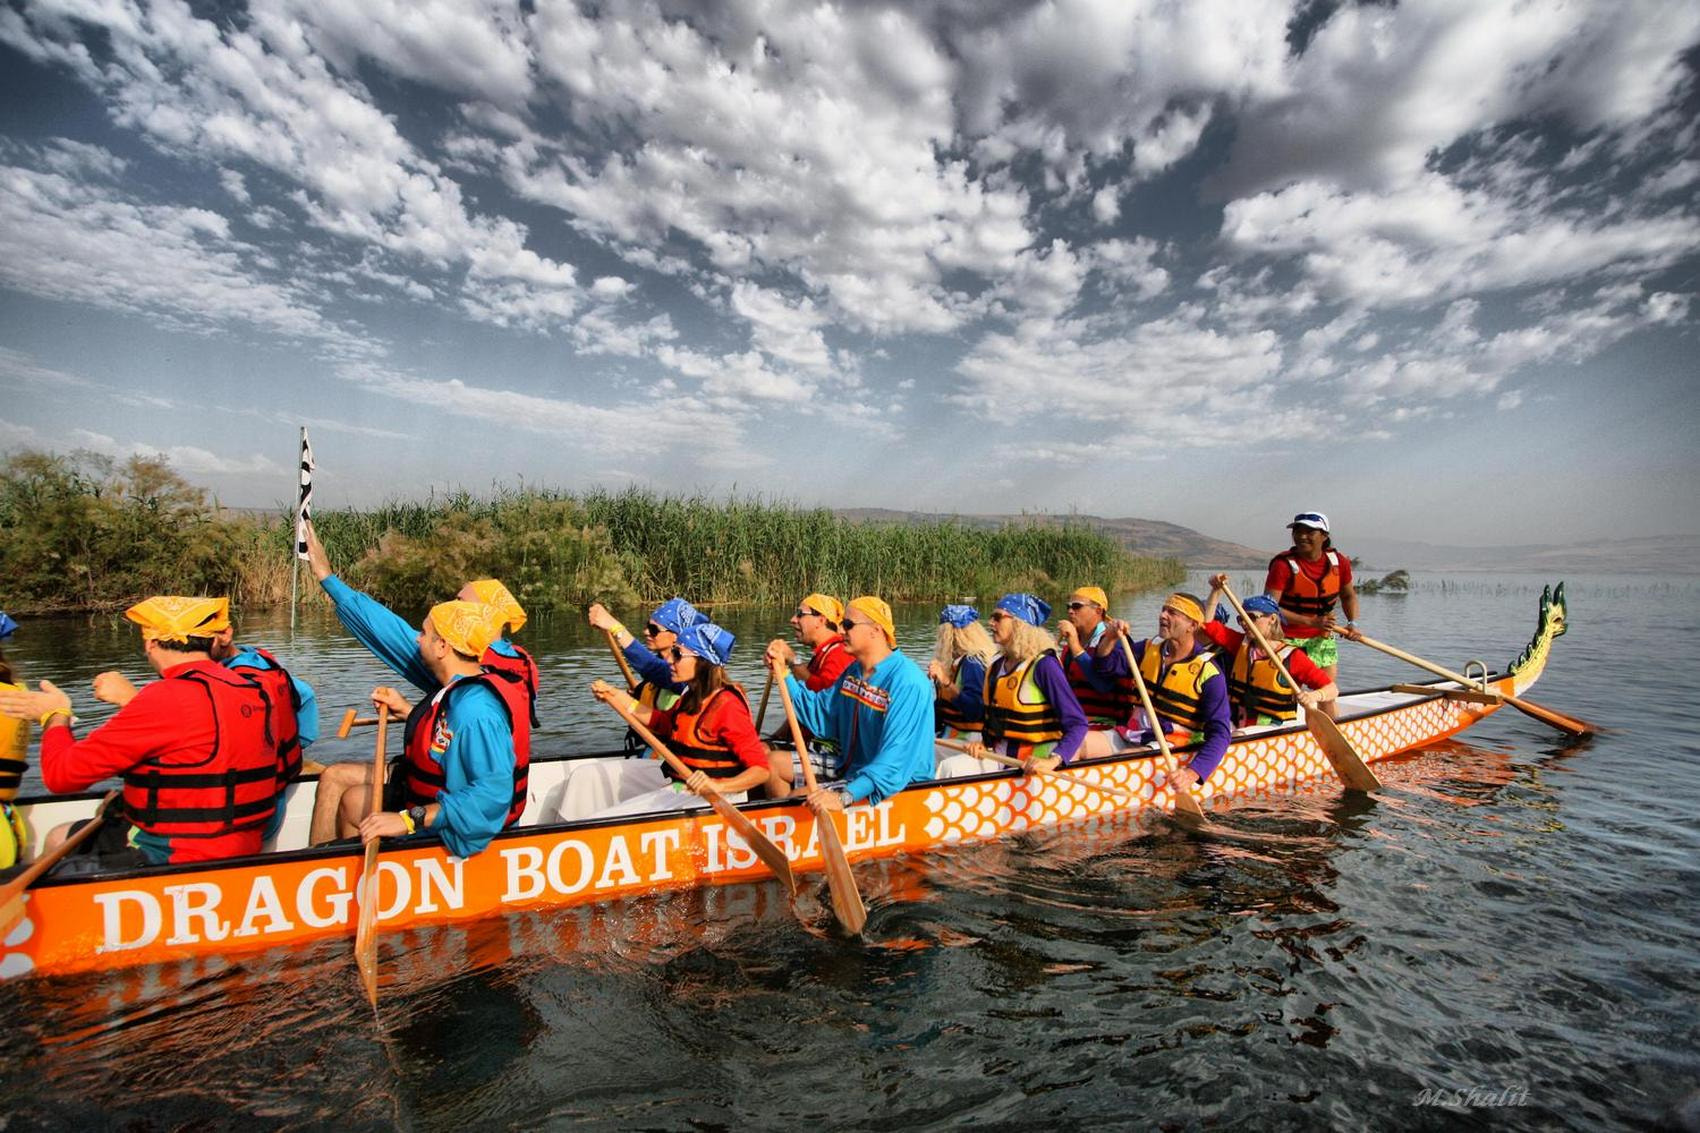 Photograph dragon boat by Moshe Shalit on 500px